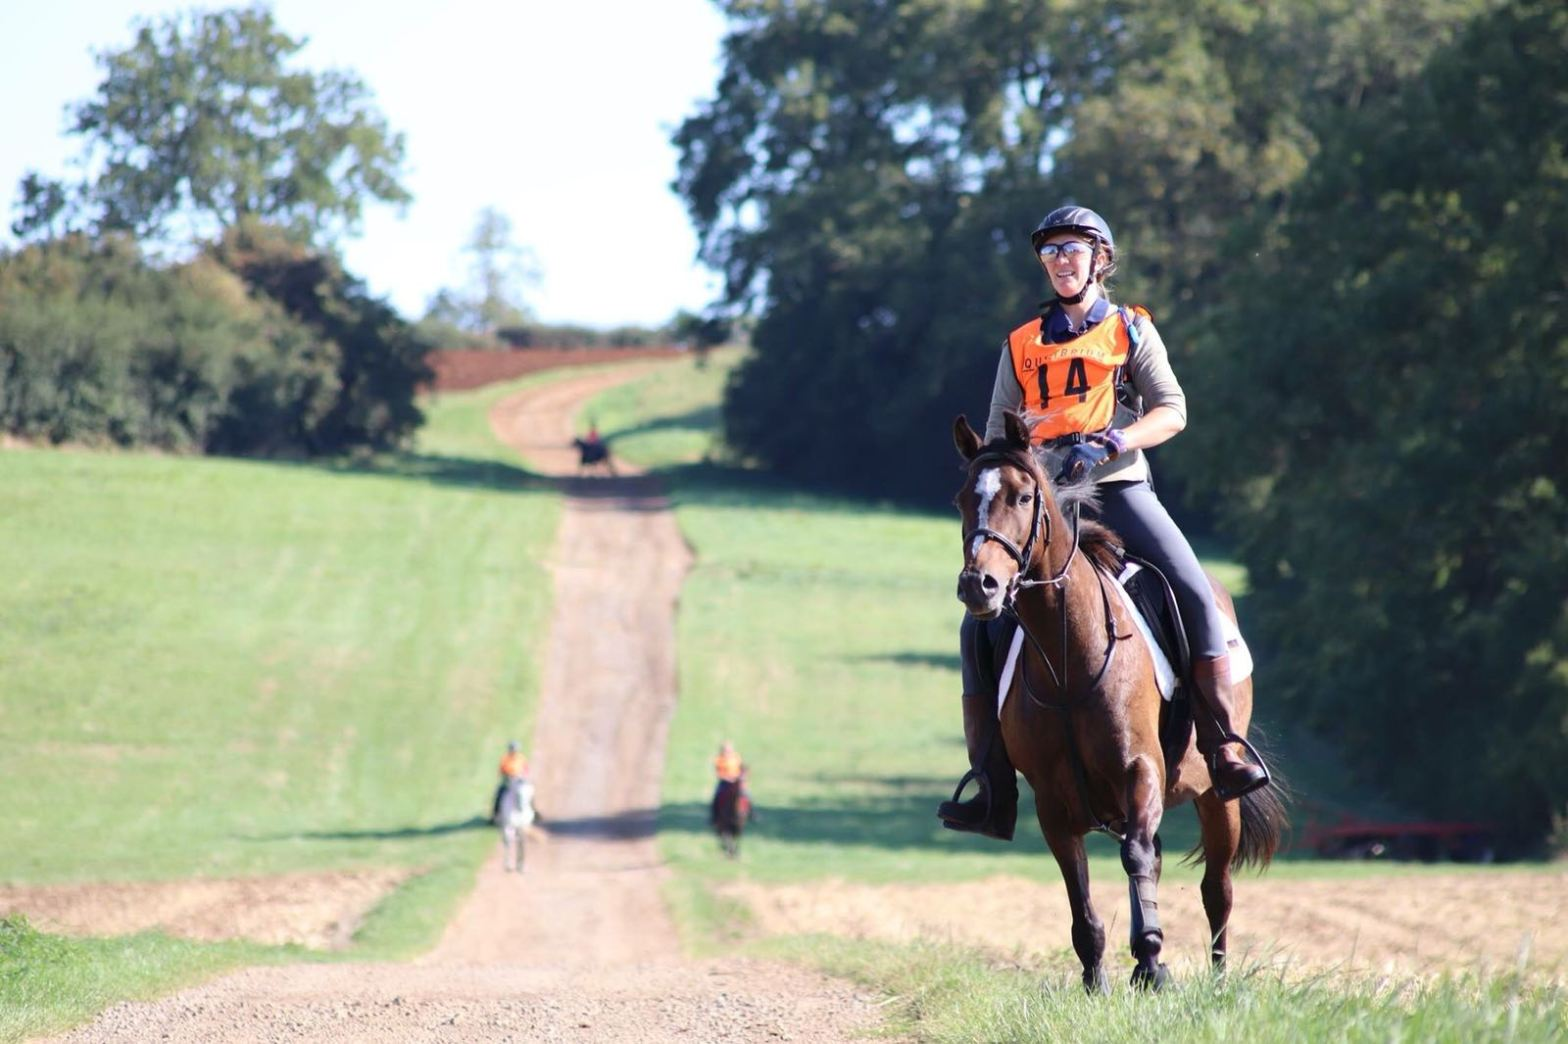 Krystal is riding her part-Arabian pony in an endurance ride in England